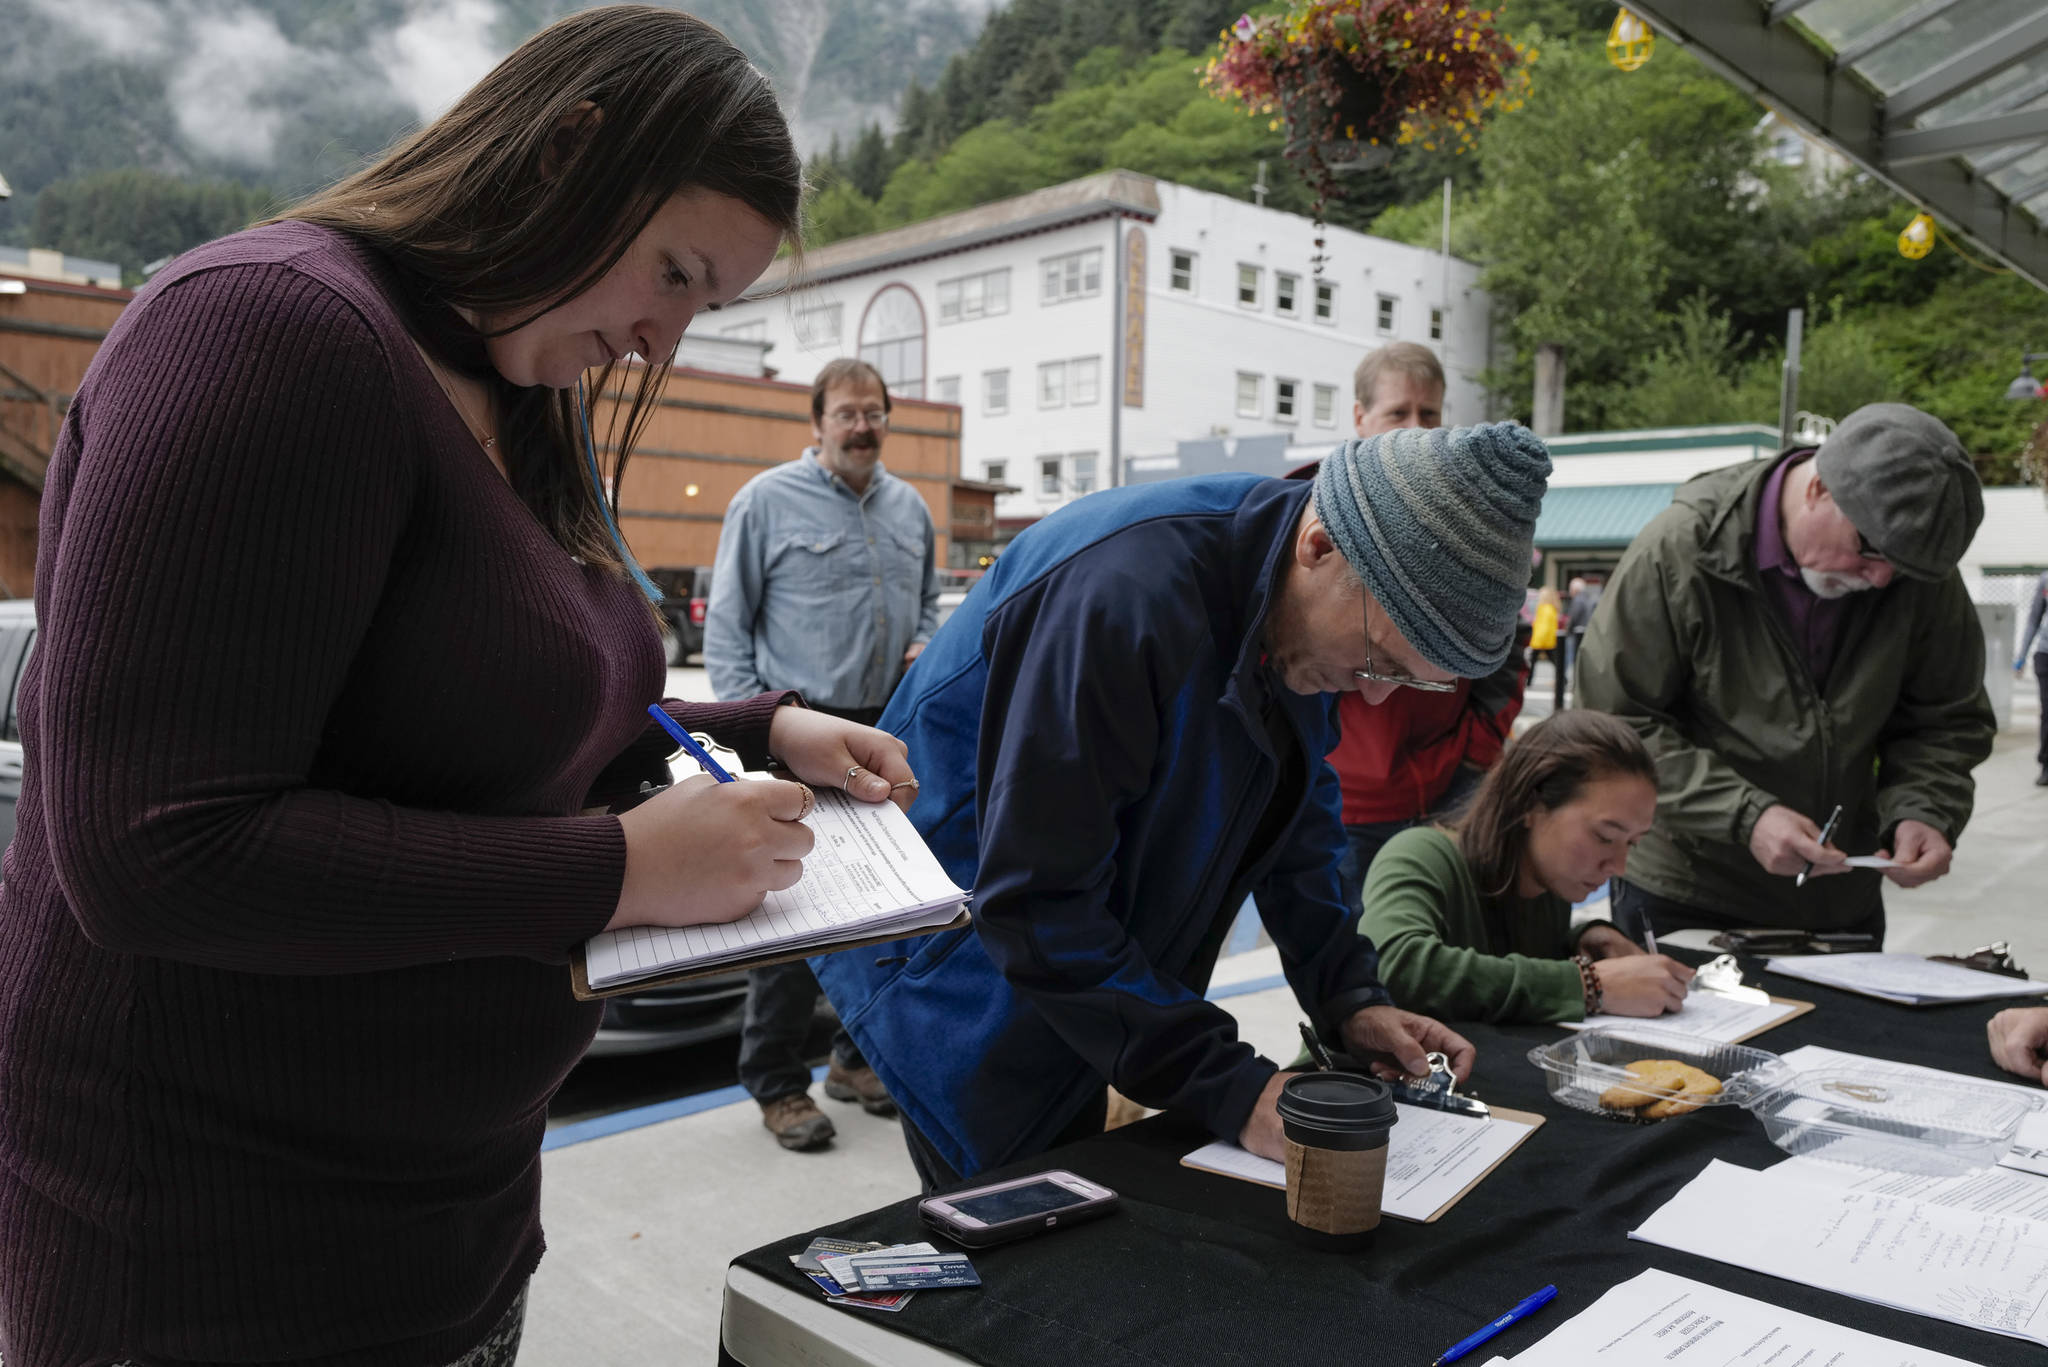 Monika Kunat, left, signs an application petition to recall Gov. Mike Dunleavy with others at the Planet Alaska Gallery on Thursday, Aug. 1, 2019. (Michael Penn | Juneau Empire)